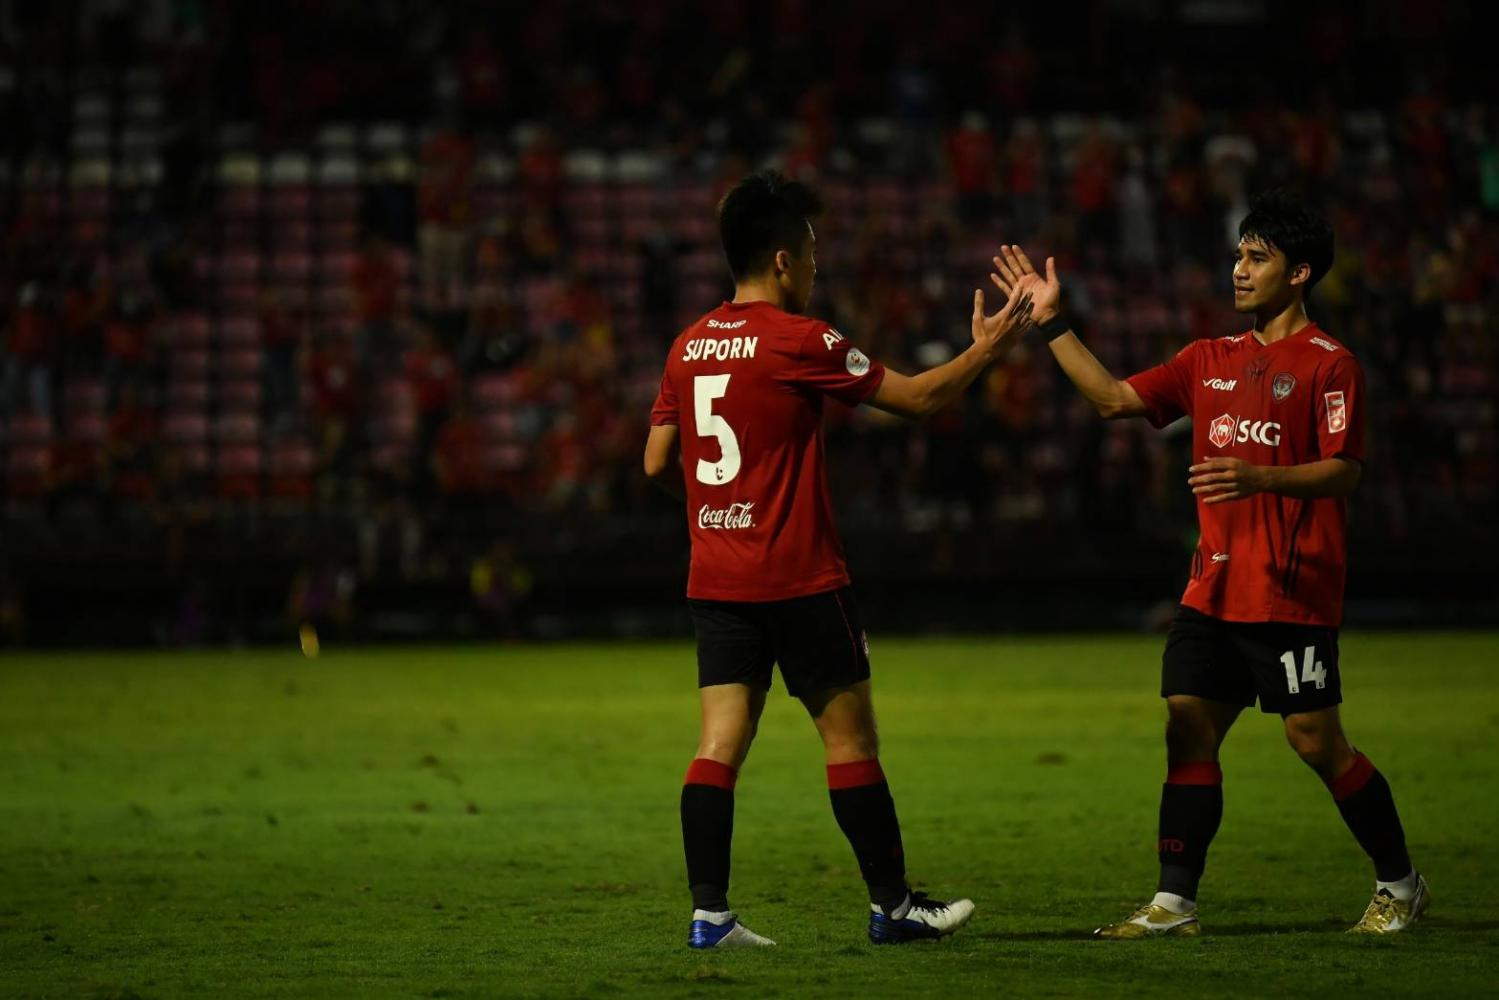 The Kirins' saviour: Muang Thong's Suporn Pinakatapho (left) celebrates his equaliser against Buriram United with teammate Chatmongkol Thongkiri.